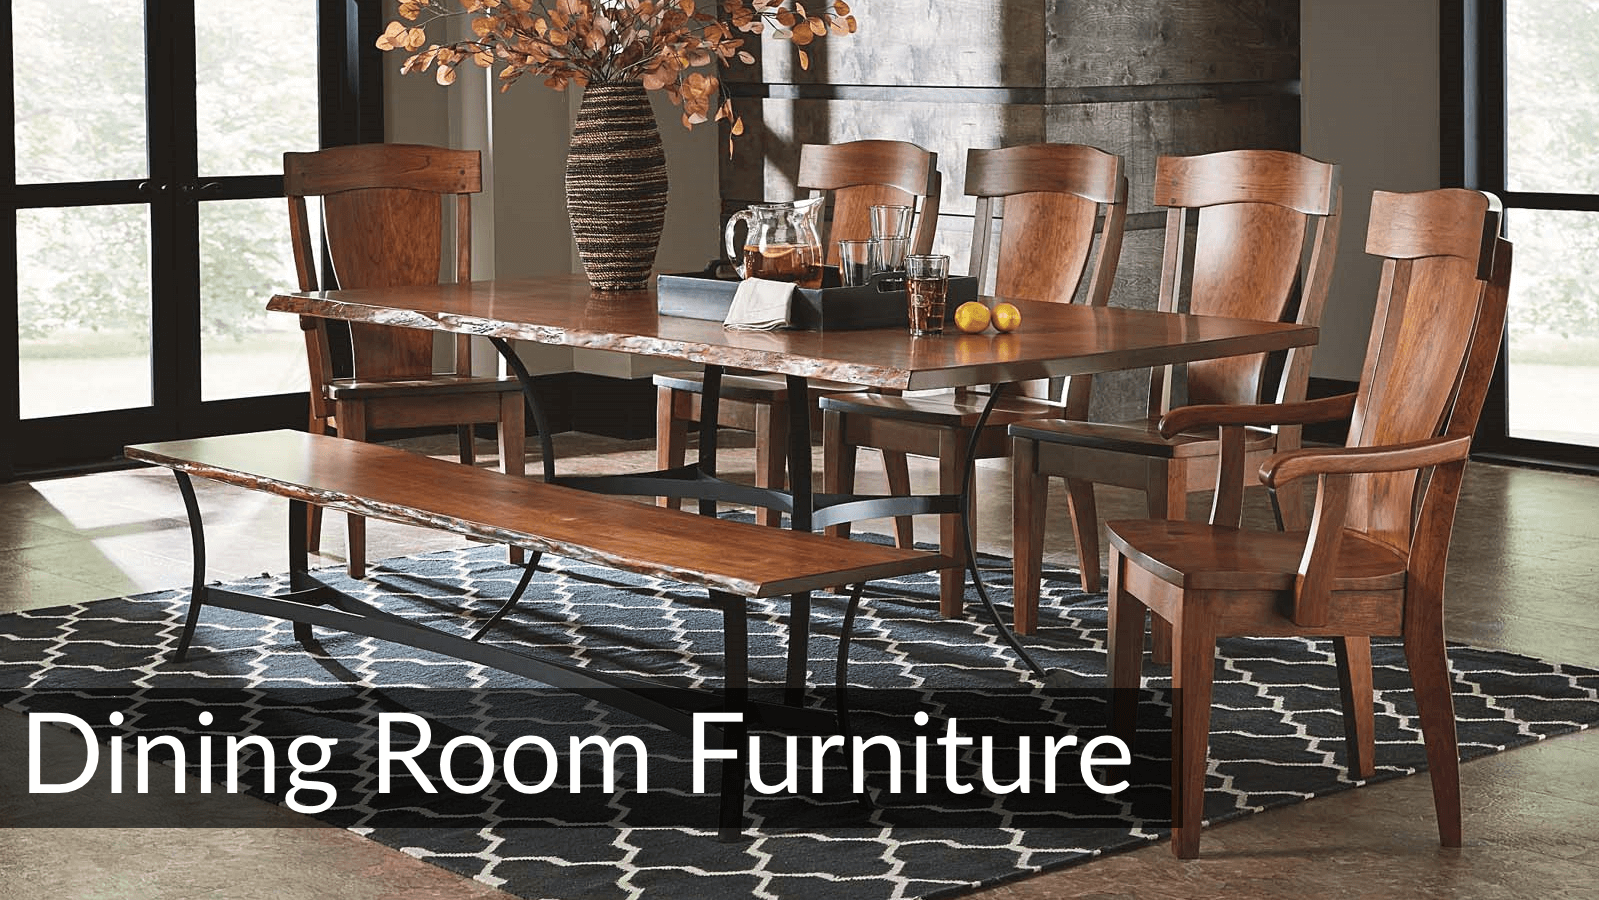 DiningRoomFurnitureButton